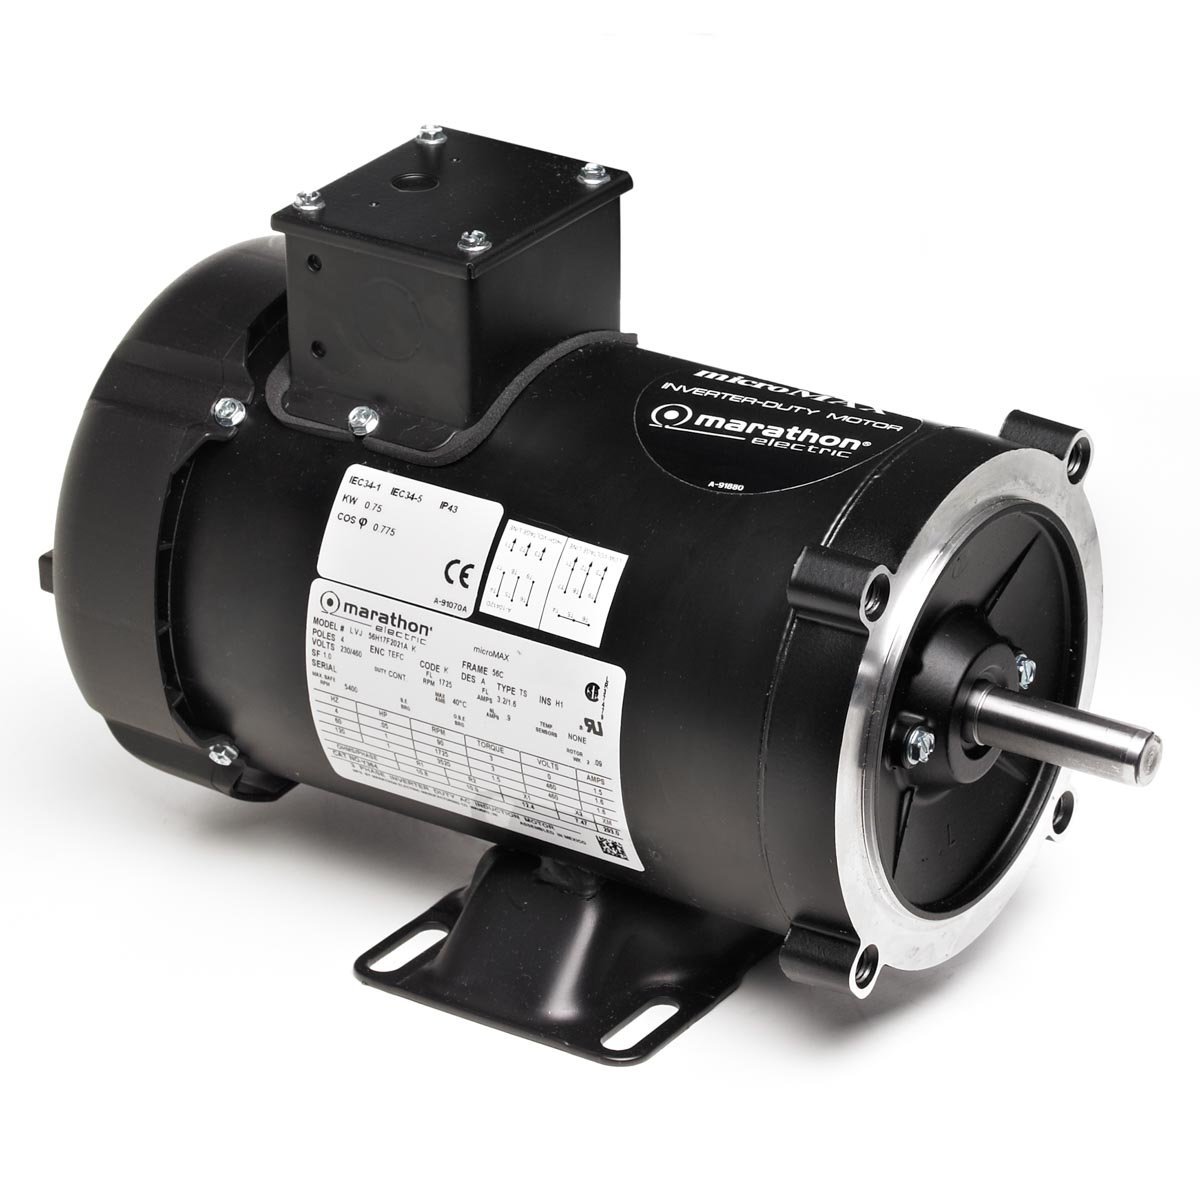 Marathon 56H17T2015 Vector Duty Motor, 3 Phase, TENV, C-Face with Base, Ball Bearing, 1/2 hp, 1800 RPM, 1 Speed, 230 VAC, 56C Frame